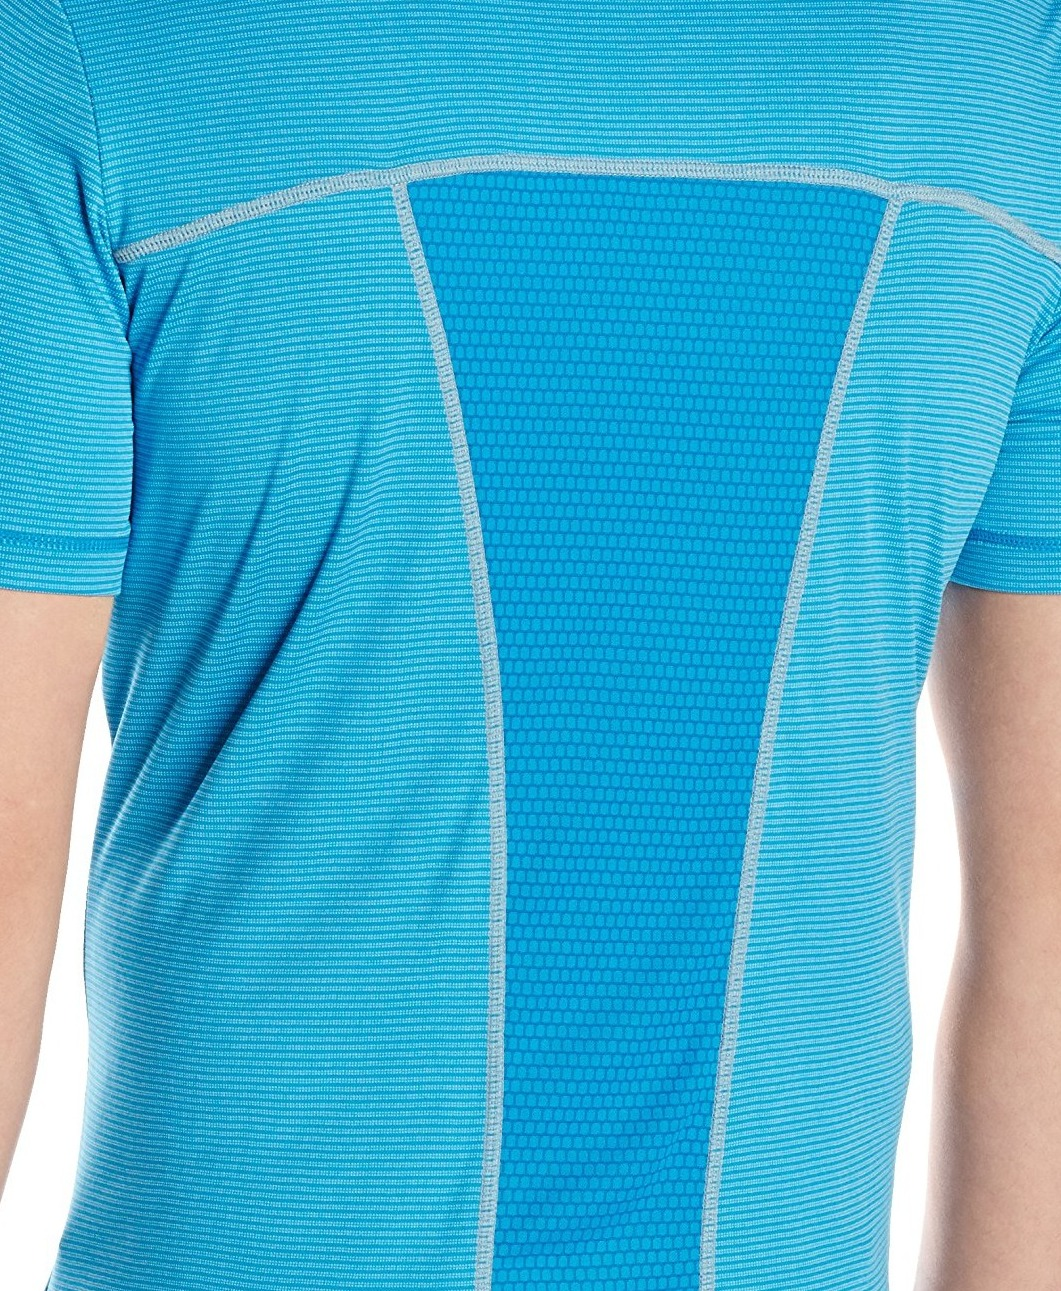 Asics-NEW-Striped-Mens-Shosha-Performance-Short-Sleeve-Tee-T-Shirt-40 thumbnail 5